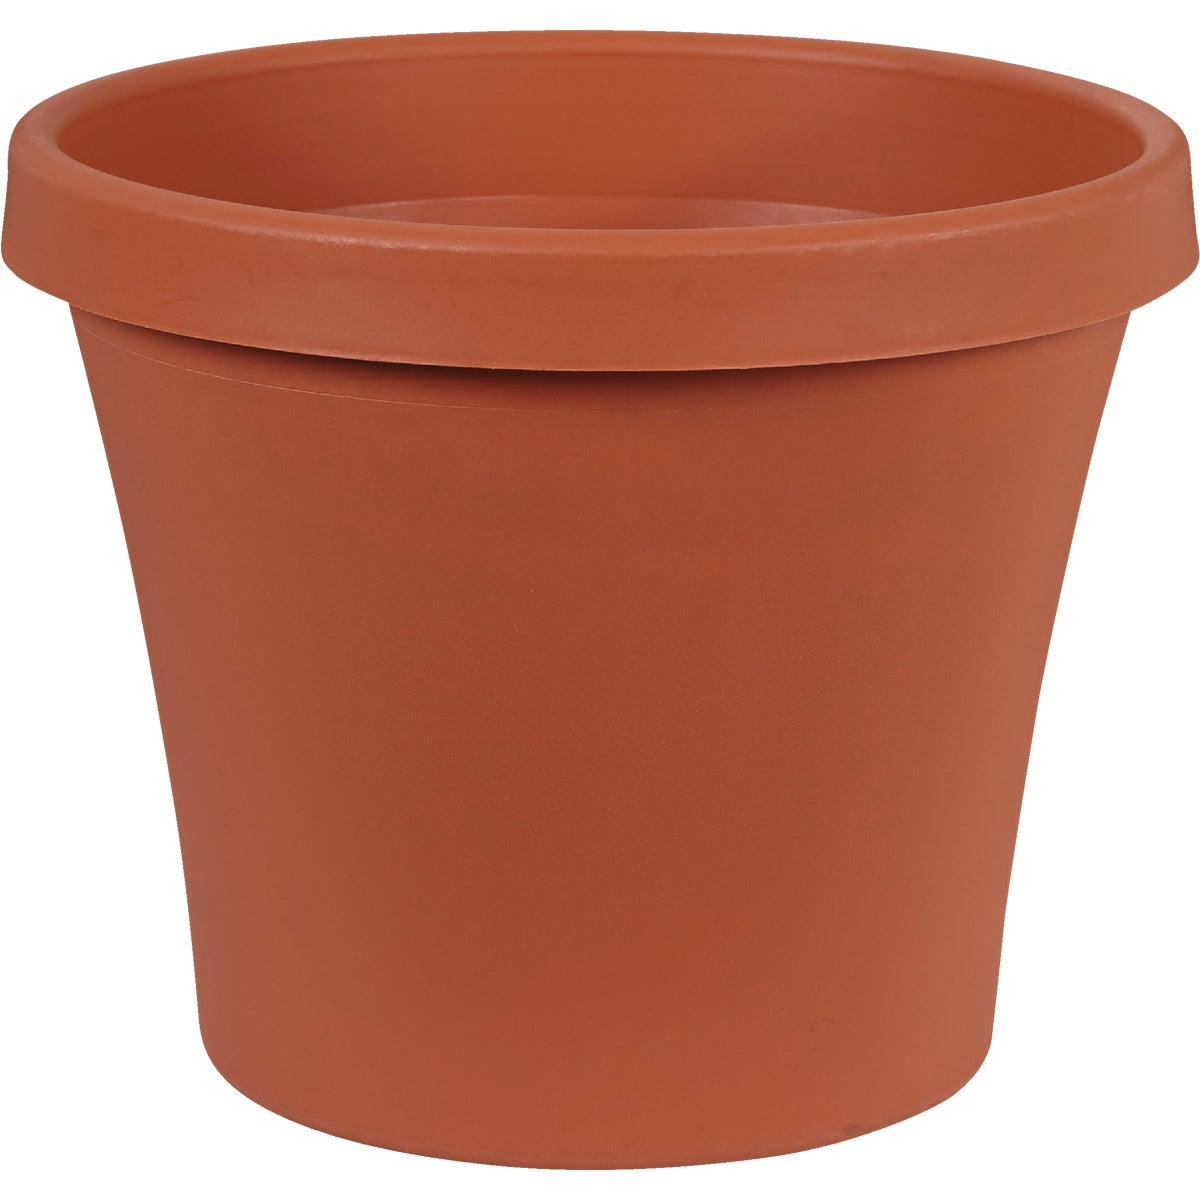 "8"" CLAY POLY POT - 50008C by Fiskars Brands Inc"